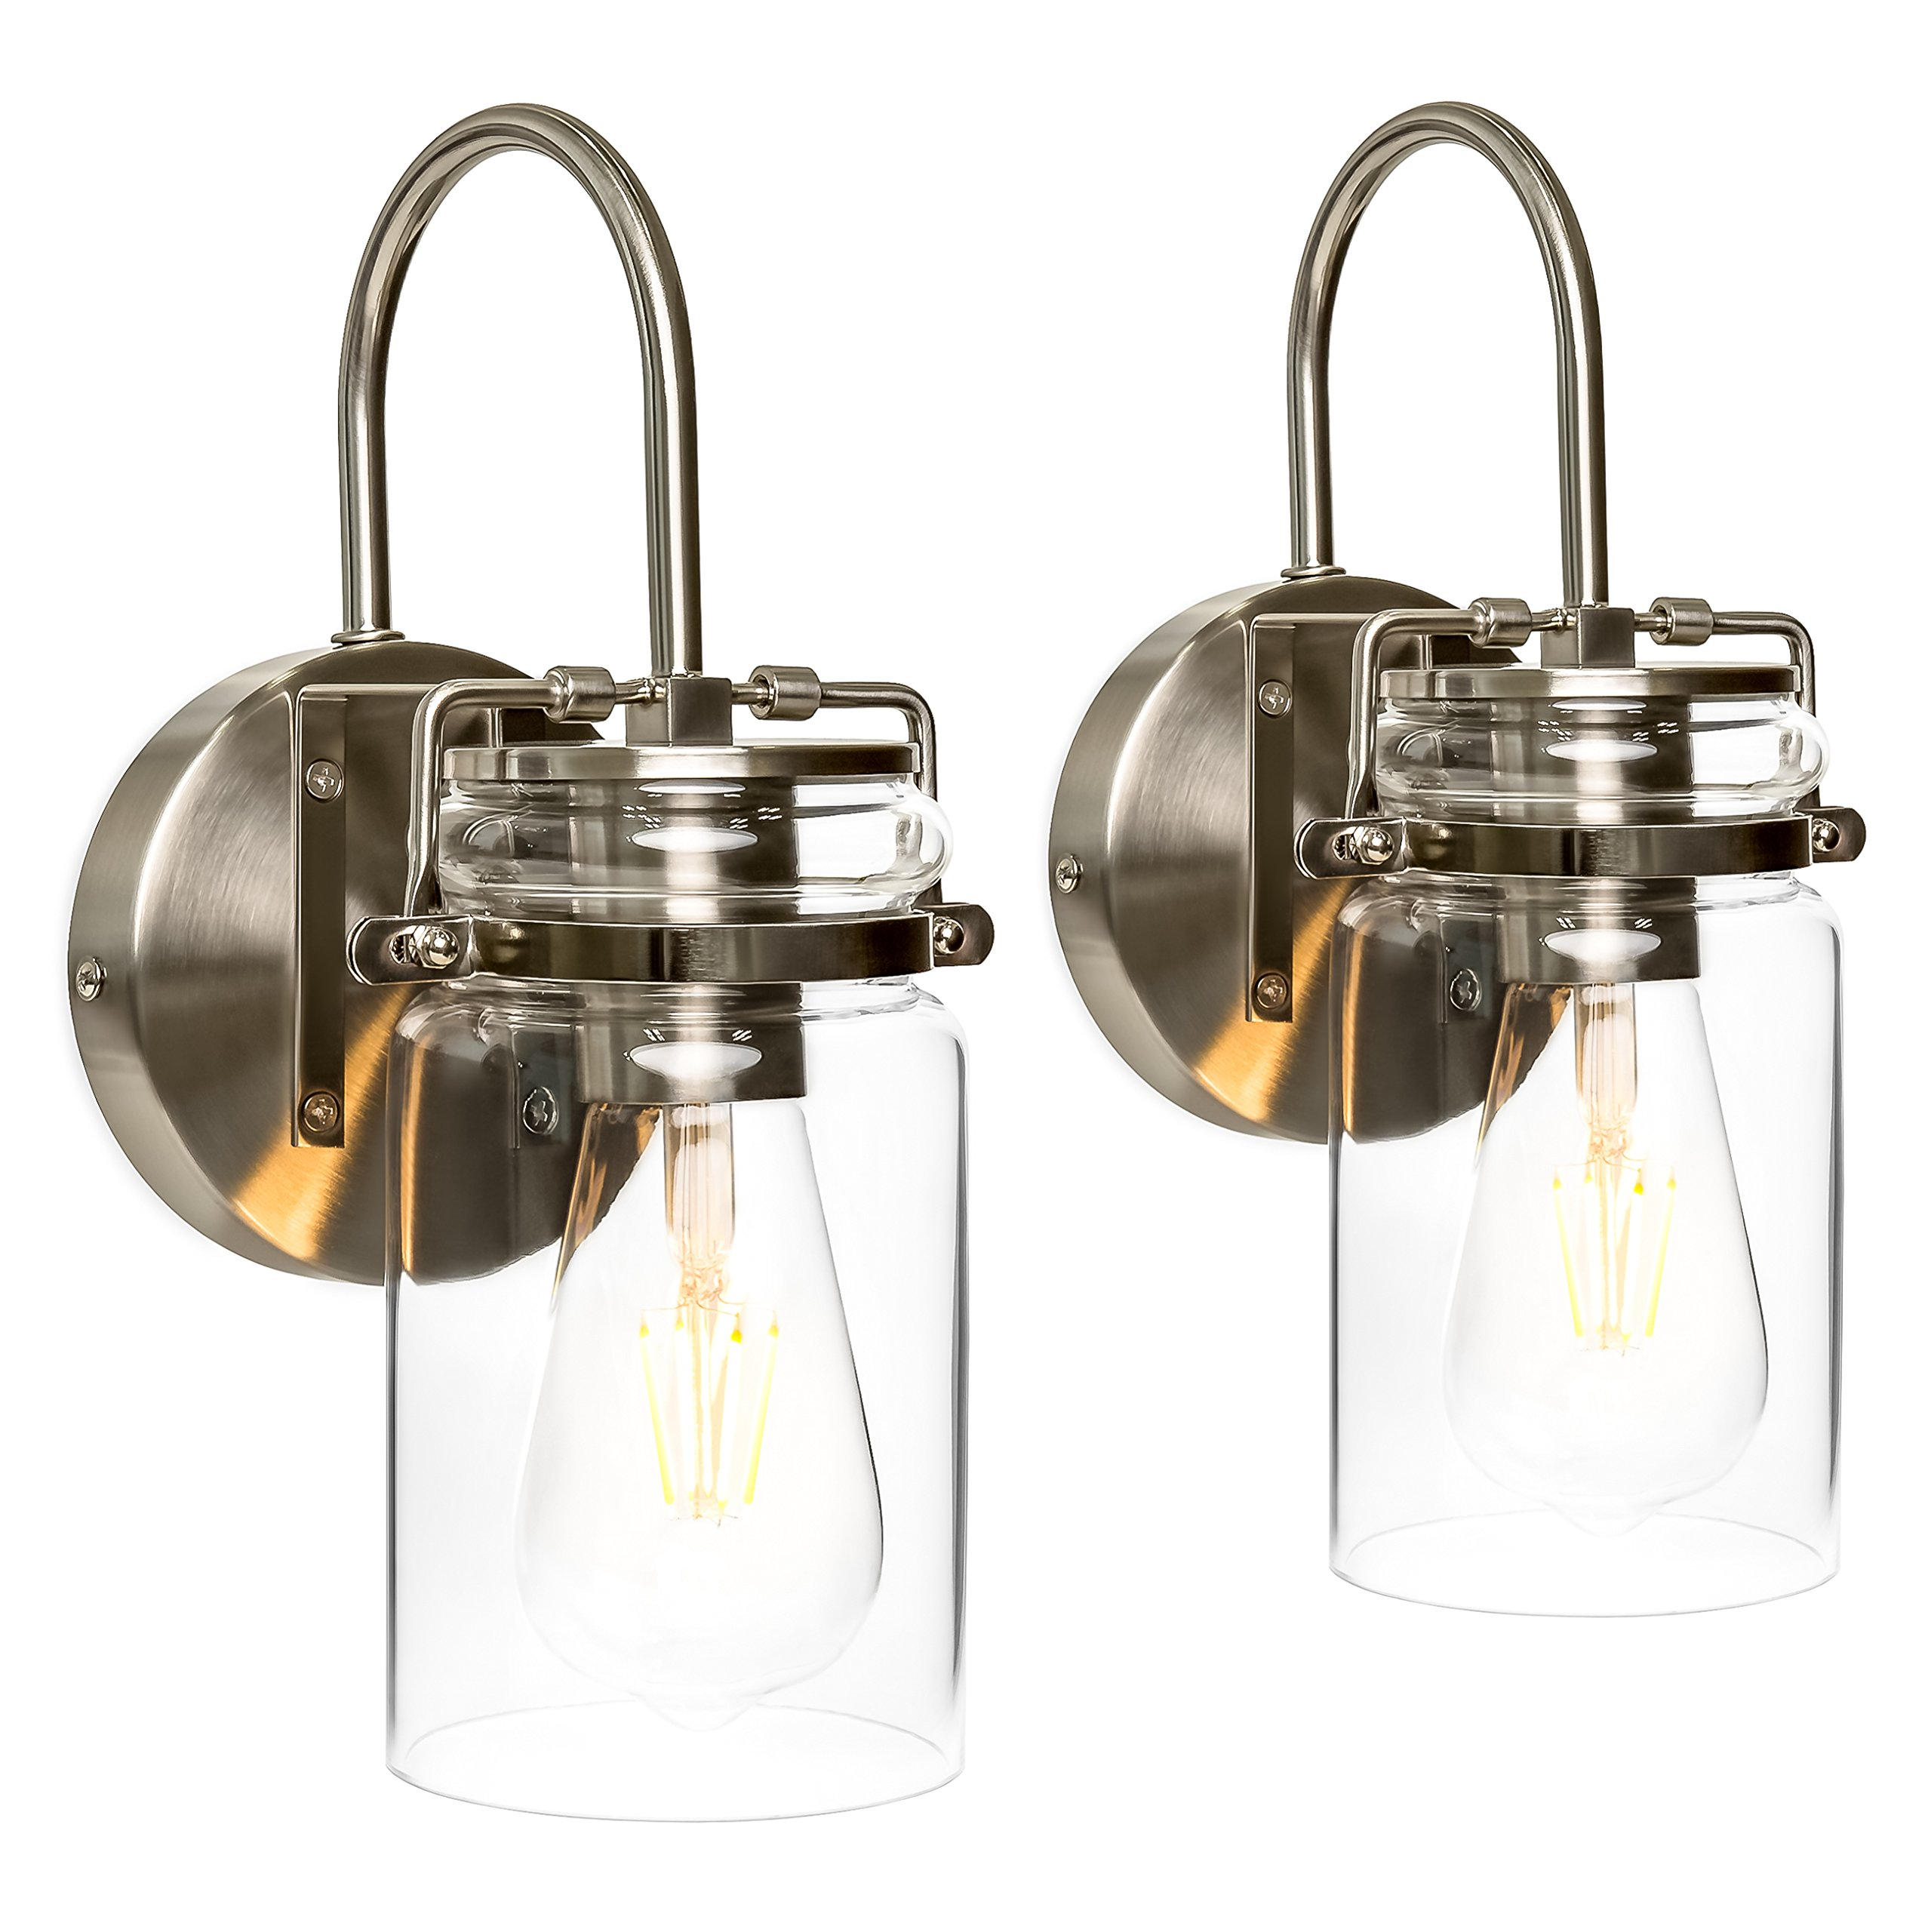 Best Choice Products Set of 2 Industrial Metal Hardwire Wall Light Lamp Sconces w/Clear Glass Jar Shade - Silver